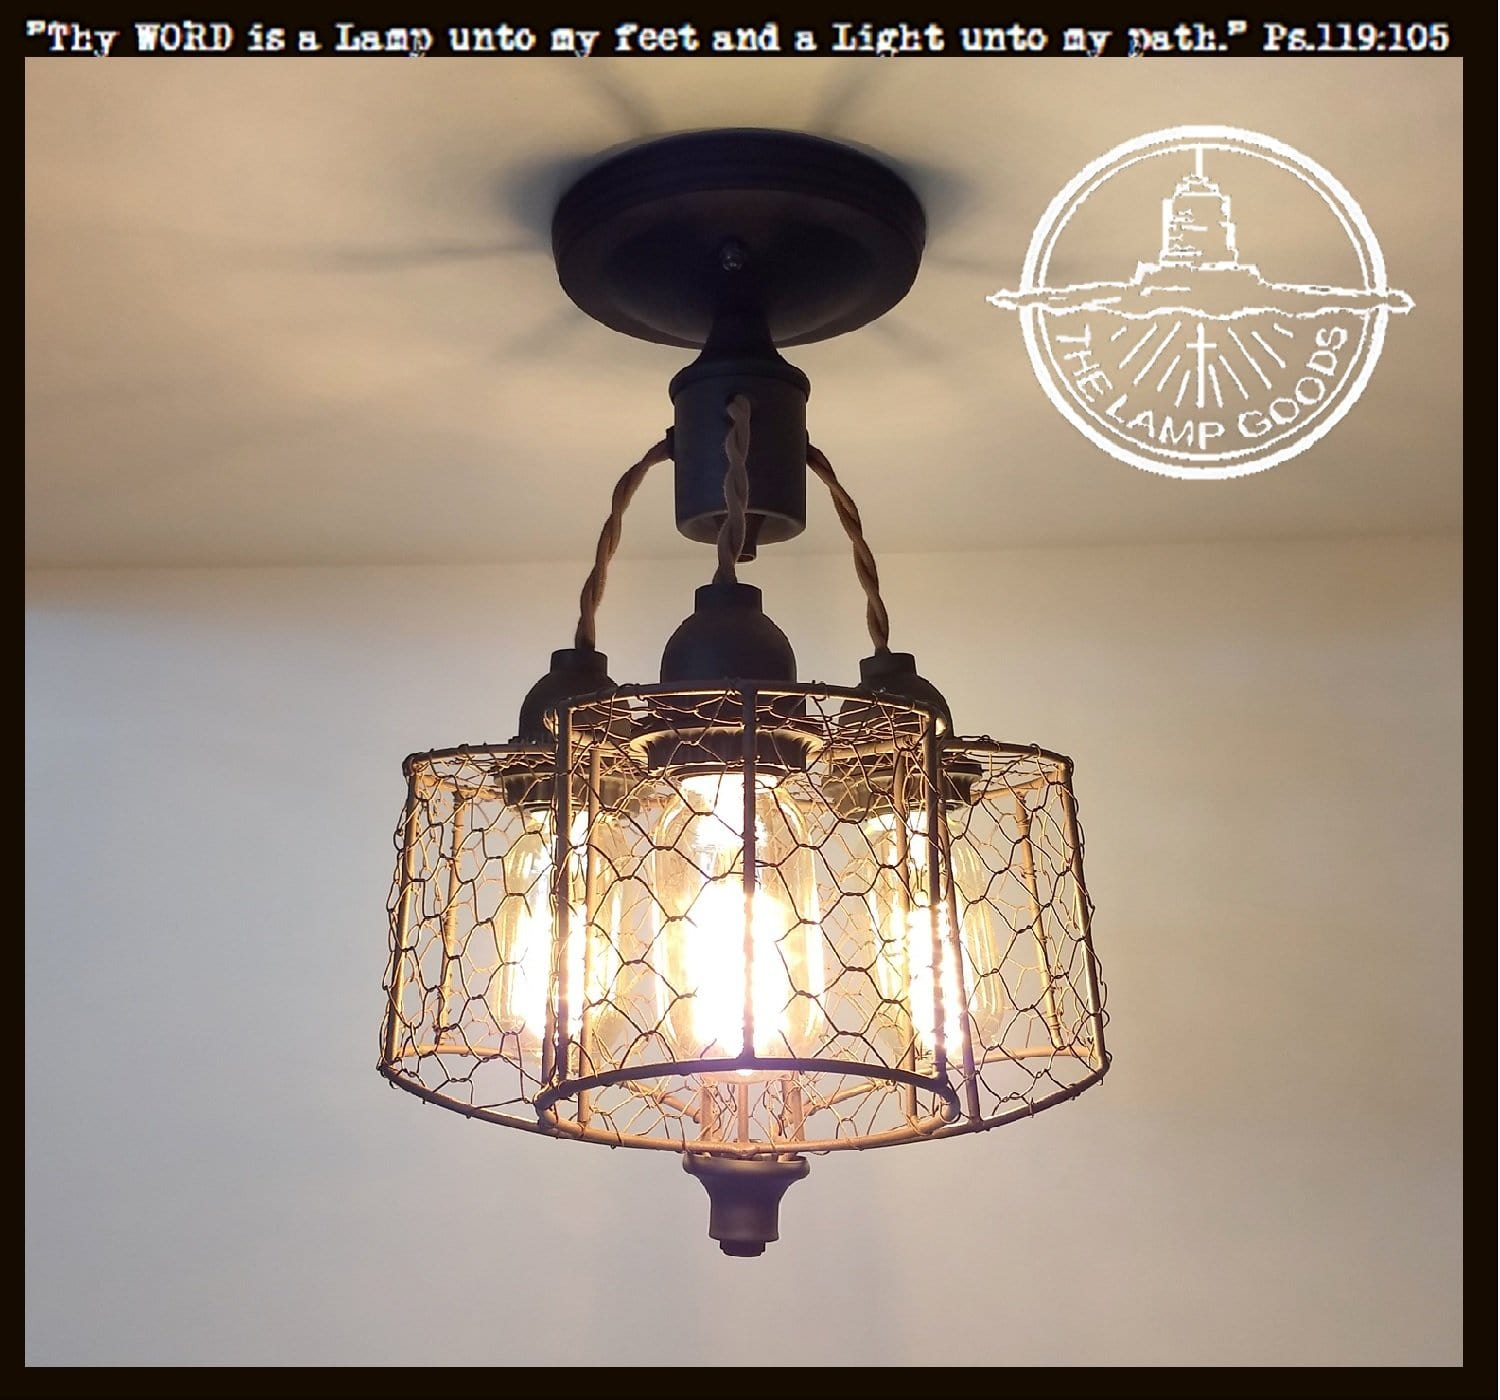 Wondrous Chicken Wire Ceiling Light Trio The Lamp Goods Wiring 101 Archstreekradiomeanderfmnl